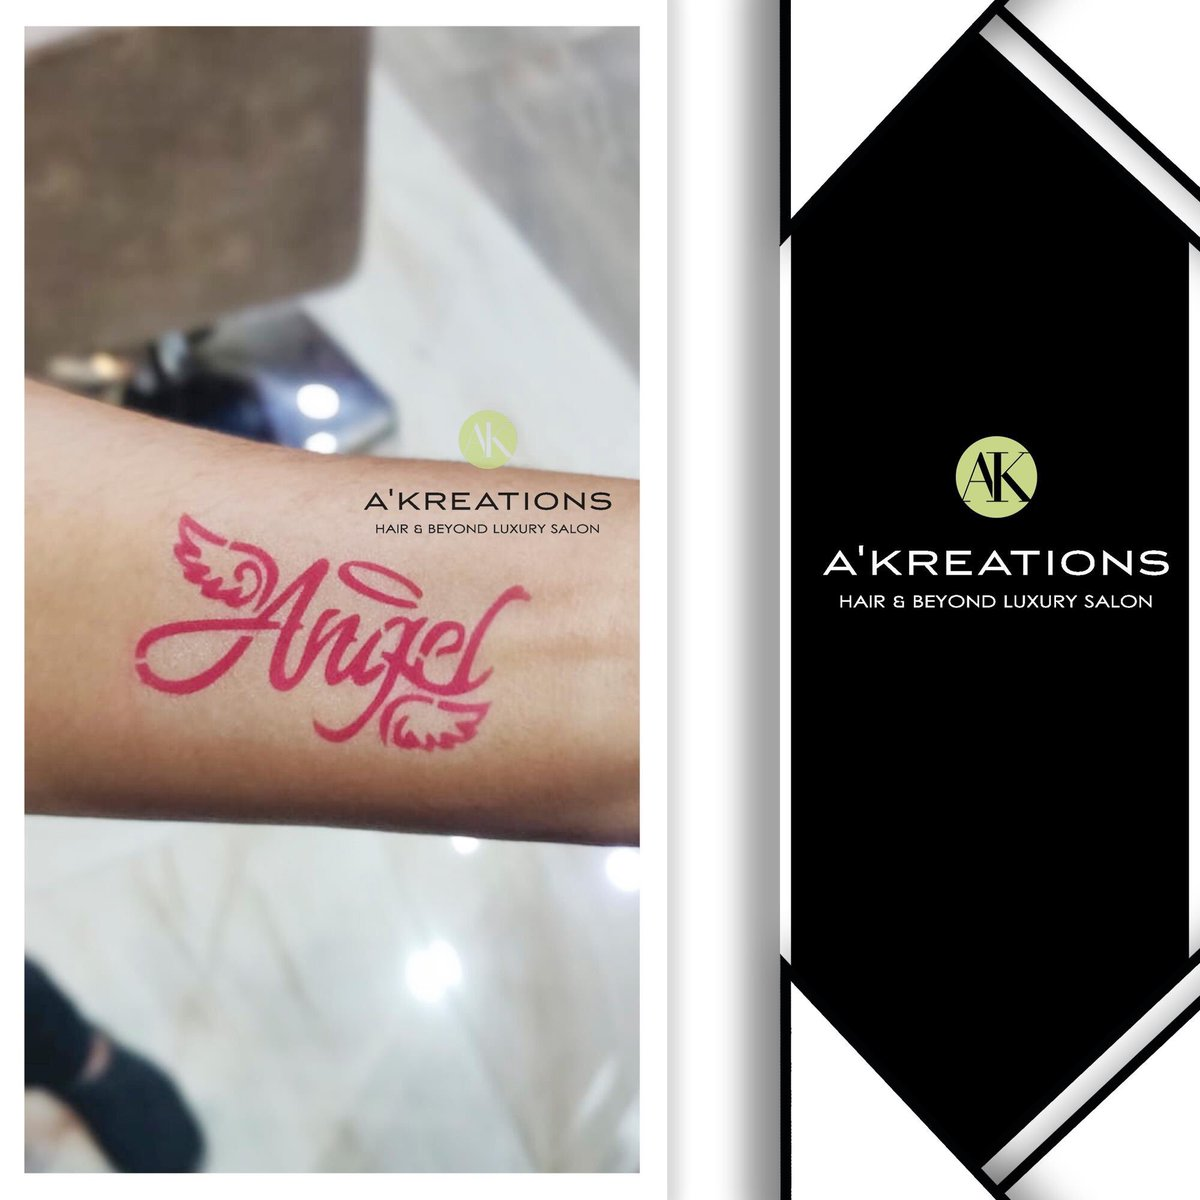 A Kreations On Twitter Temporary Body Art Angel Airbrushed On To Our Client S Wrist By Our Style Director Yogesh Nikam At Akreationsindia Https T Co 3xl8faca16 Akreationsindia Hairexperts Haircut Bodyart Angelbodyart